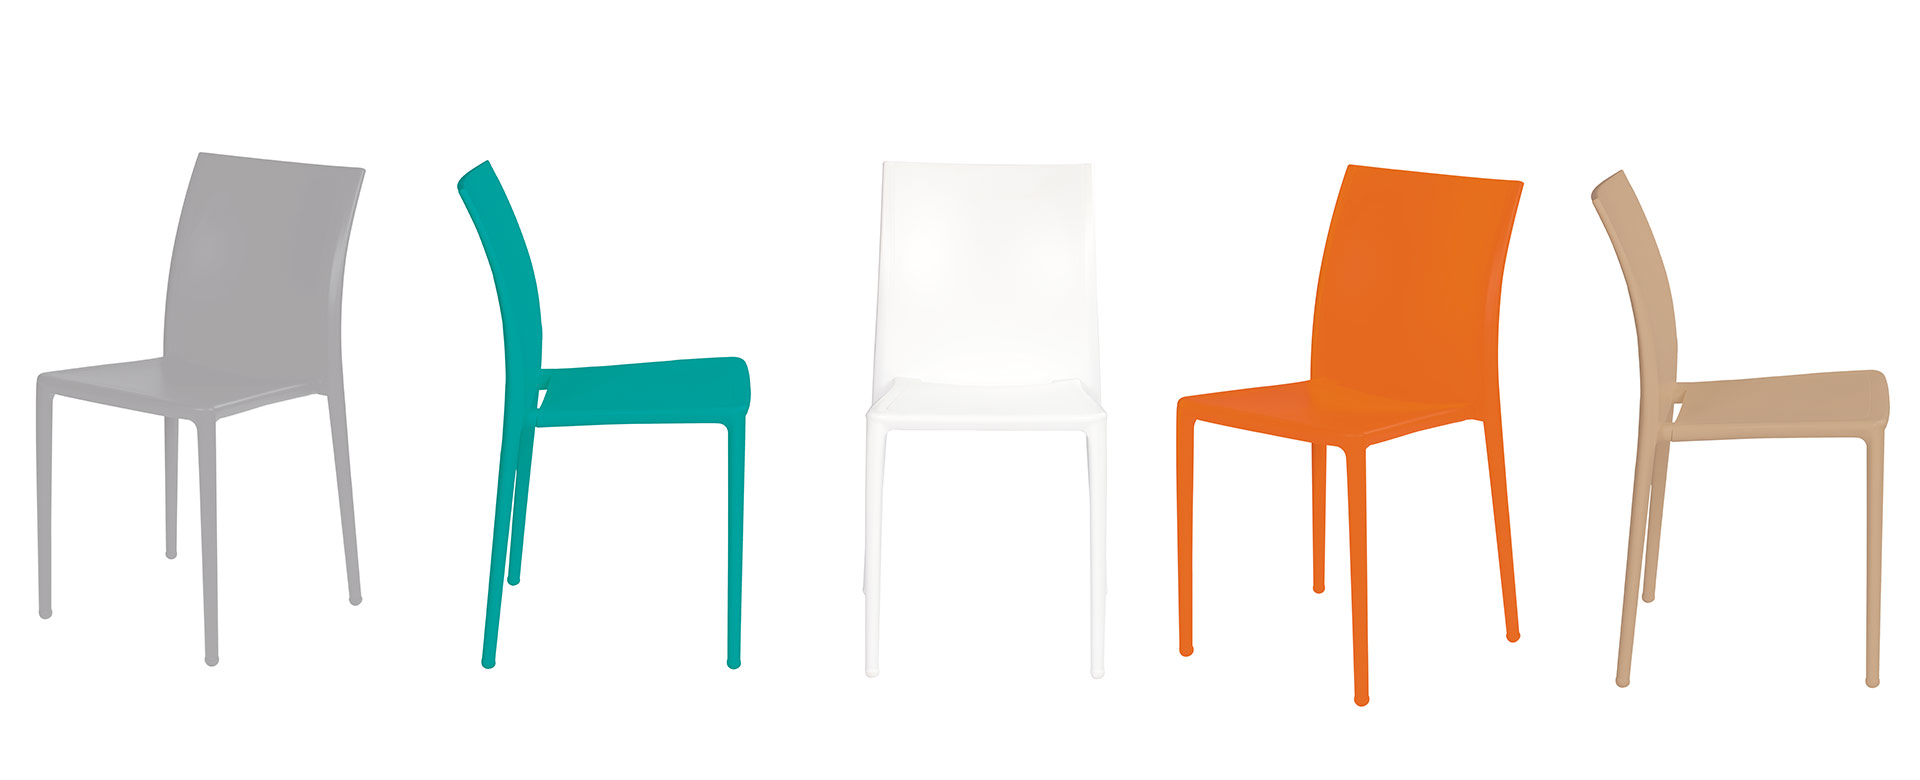 LUCIDO Outdoor Chairs